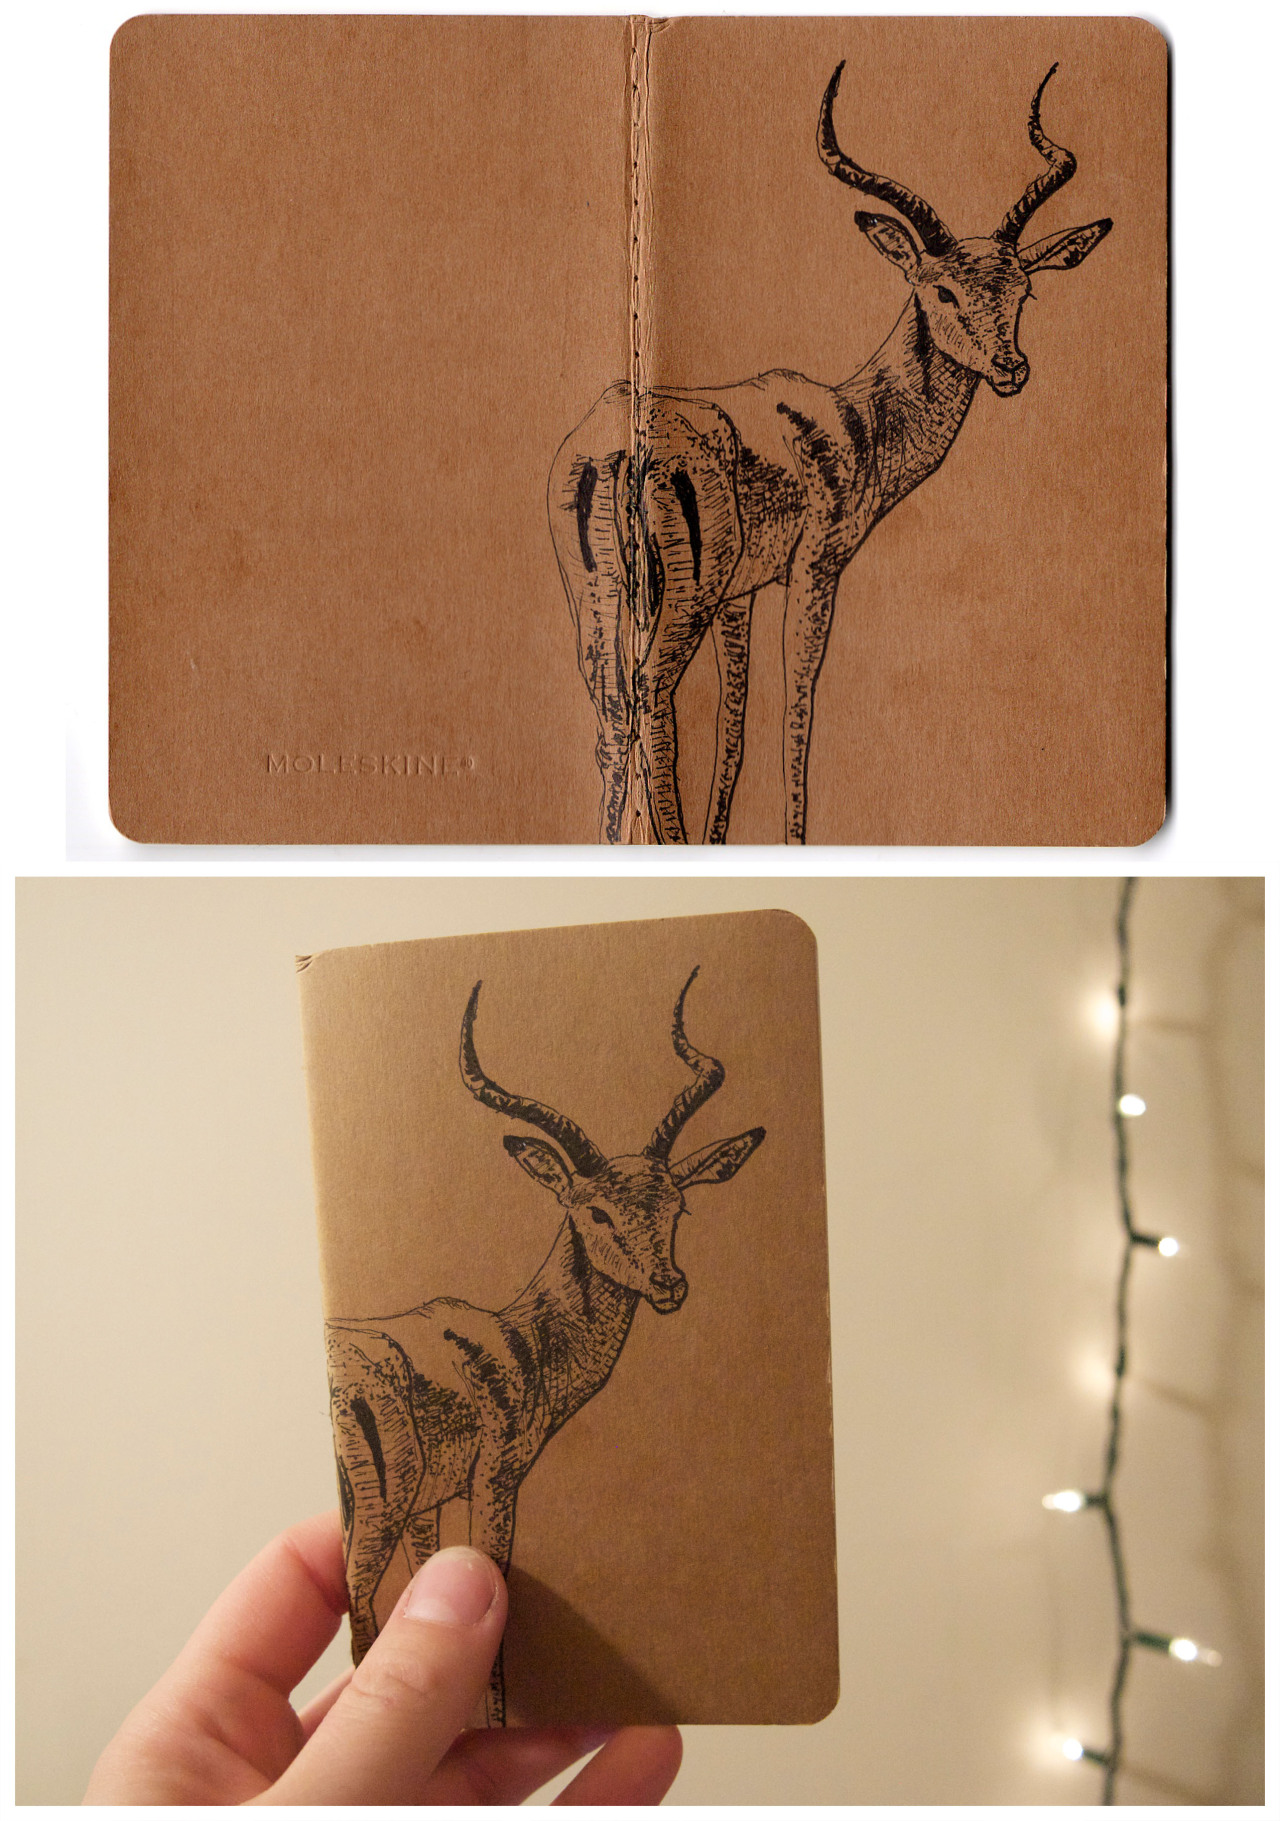 eatsleepdraw:  I drew on the cover of this moleskine as a christmas present for my sister! :)  Hey, I got published on eatsleepdraw! I feel special. :p